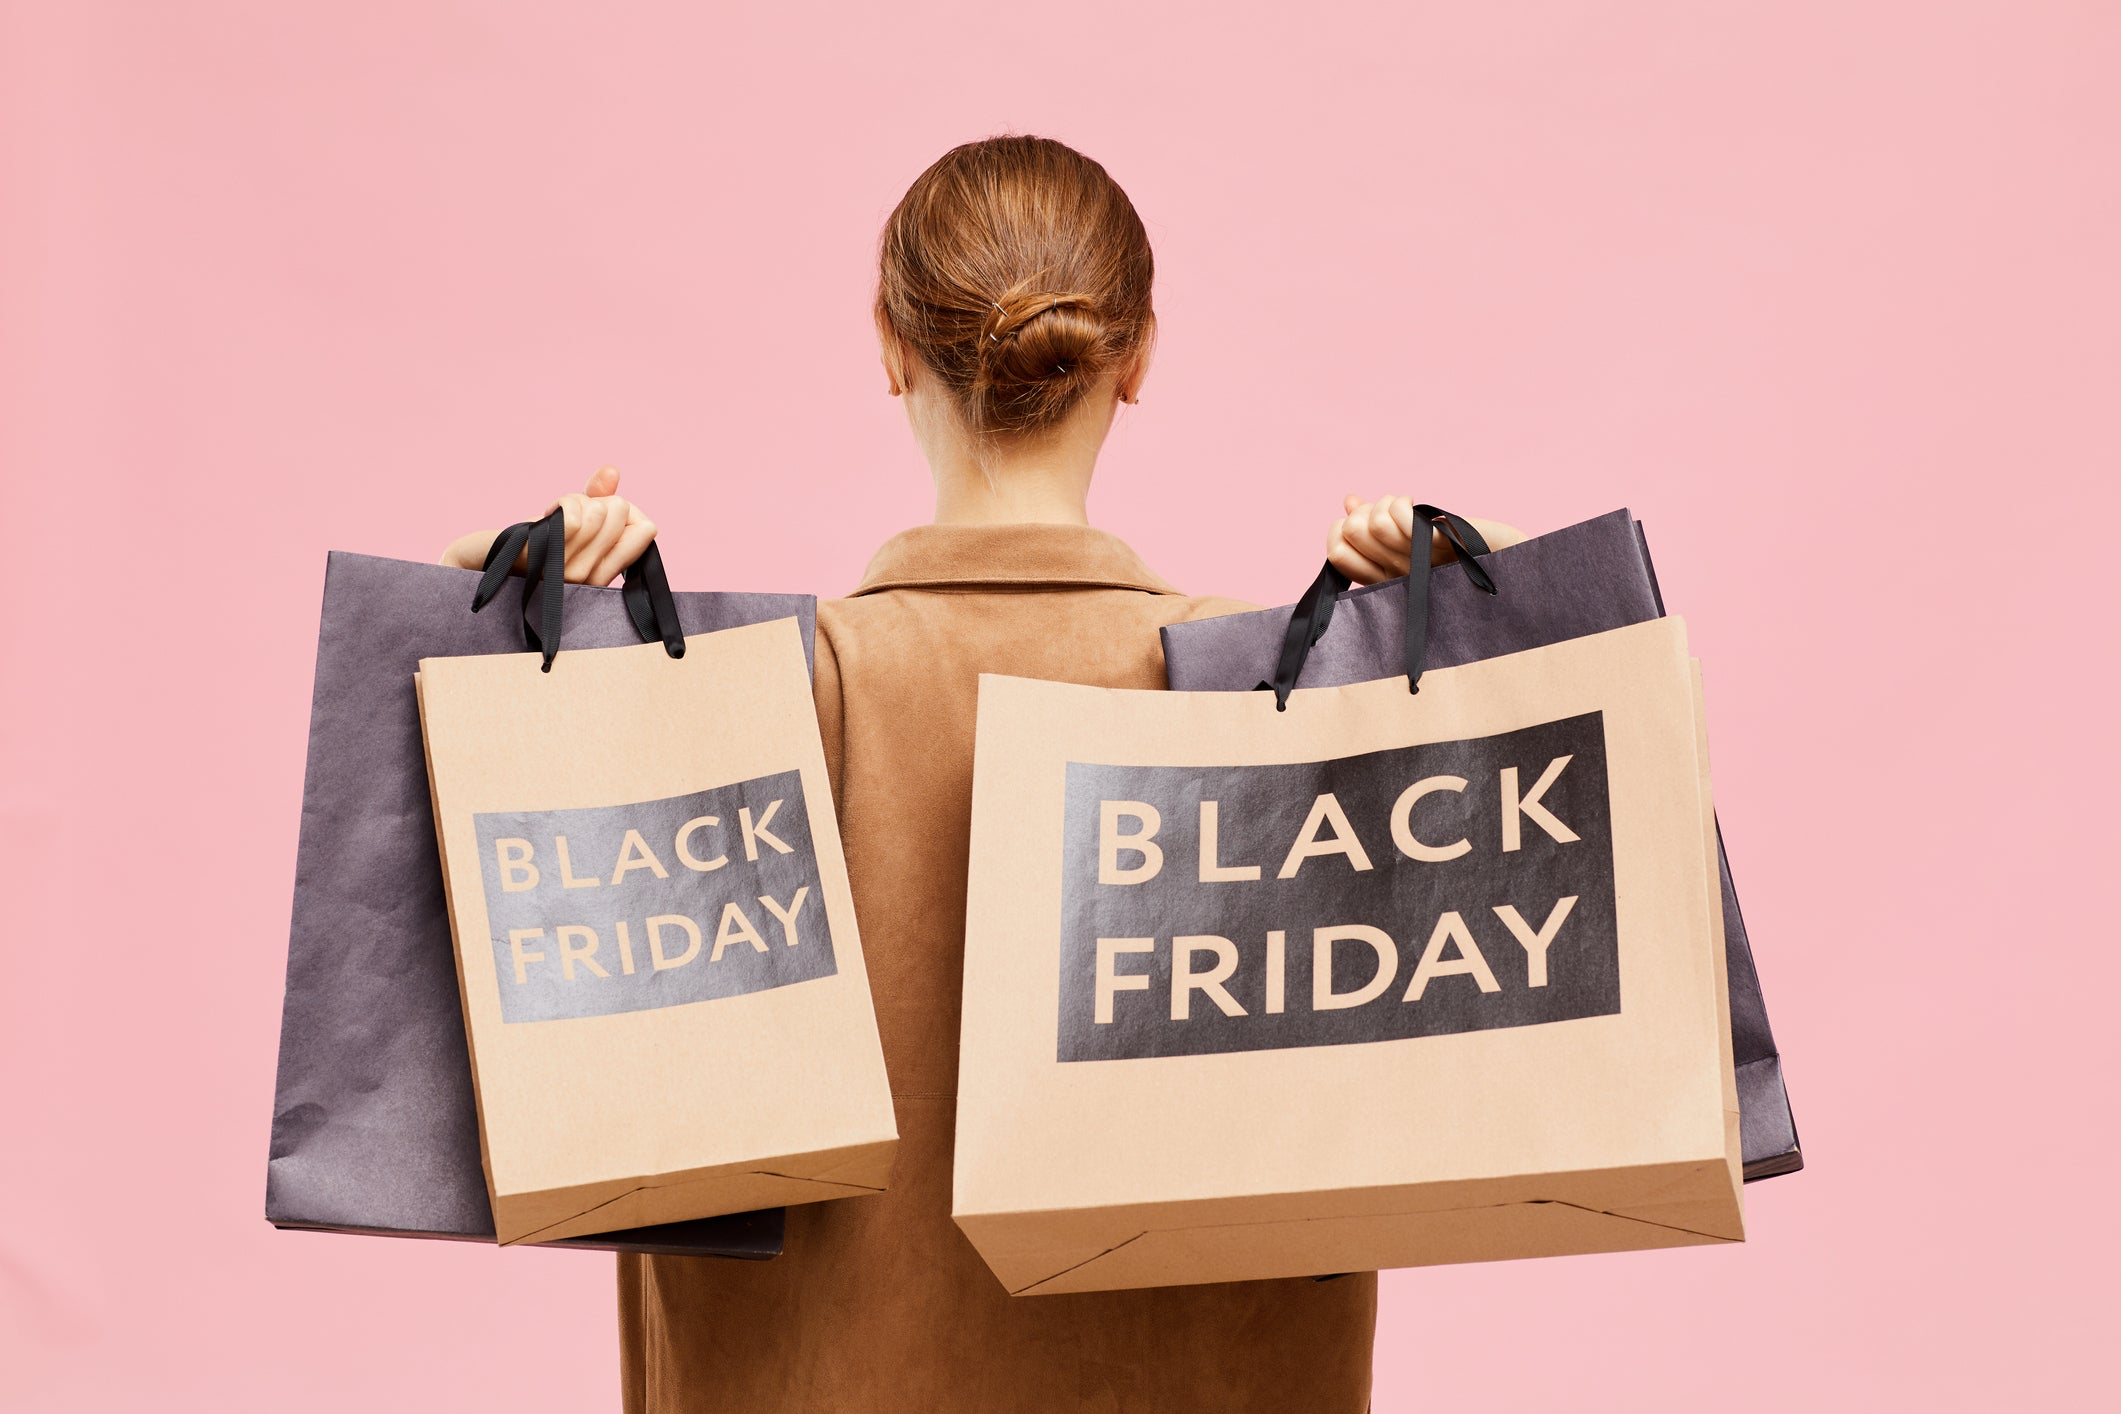 Black Friday 2020 What To Expect On The Biggest Shopping Day Of The Year Indy100 Indy100